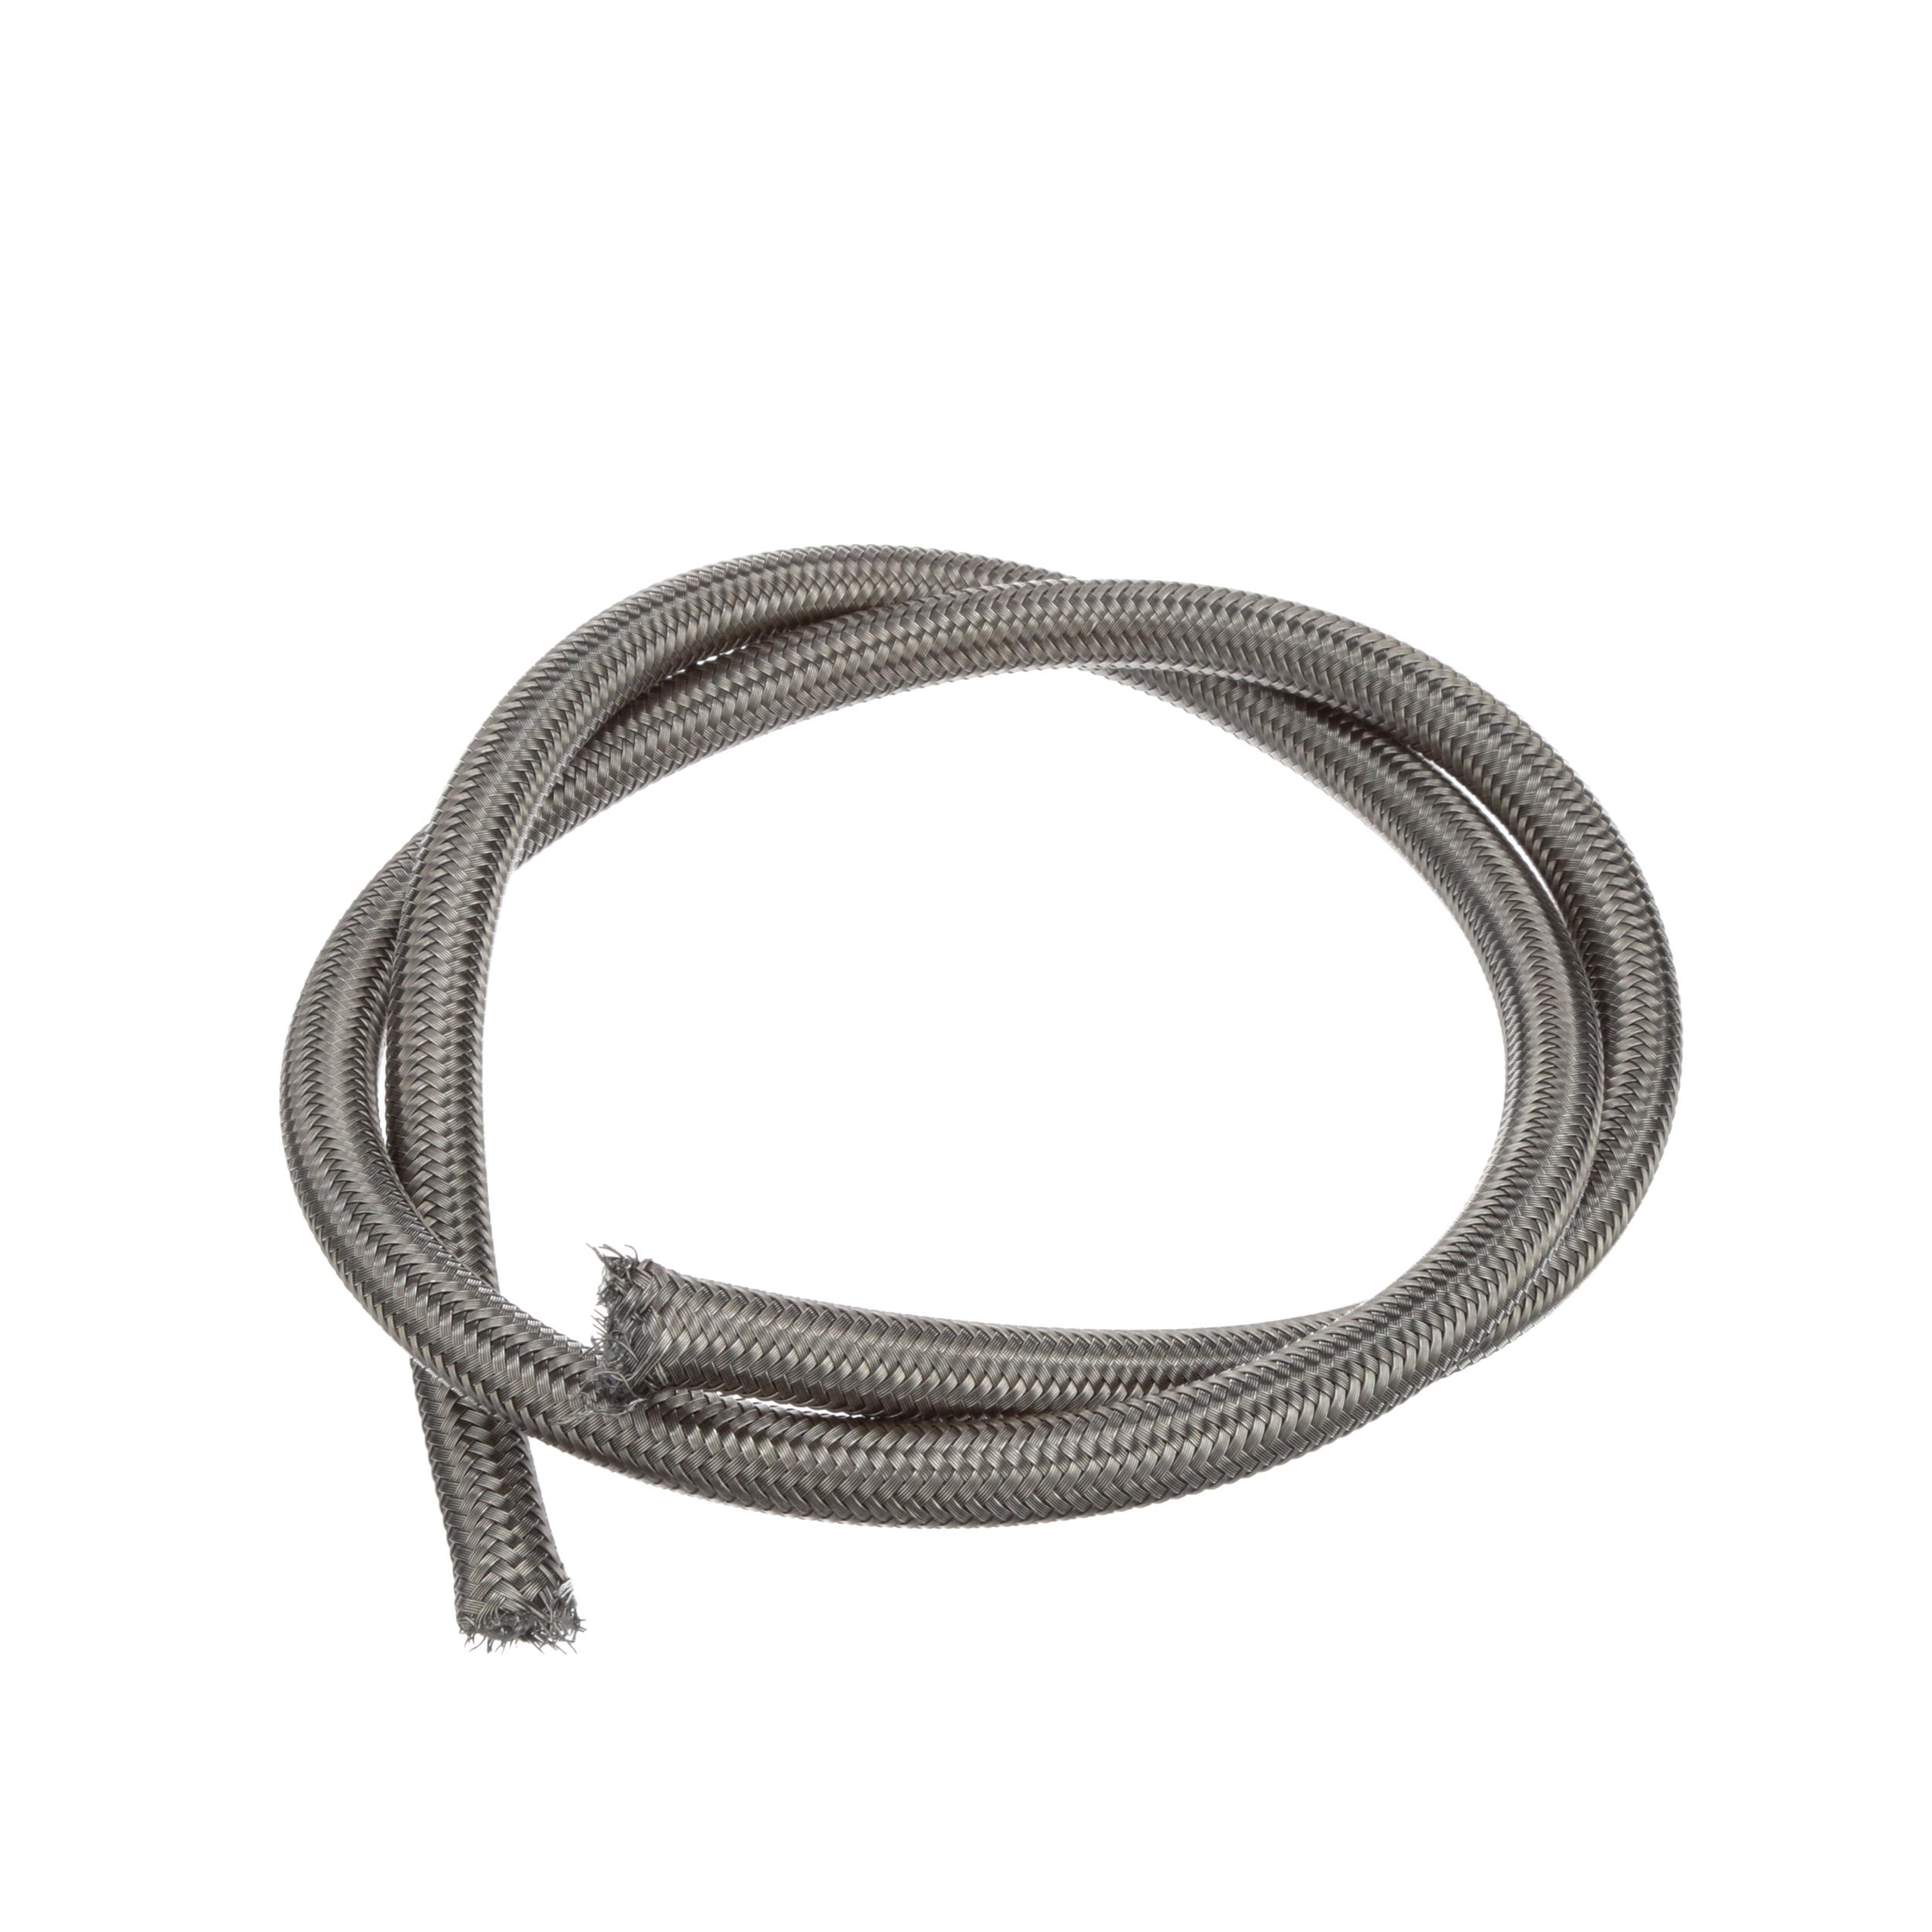 MARKET FORGE HOSE (PER IN)